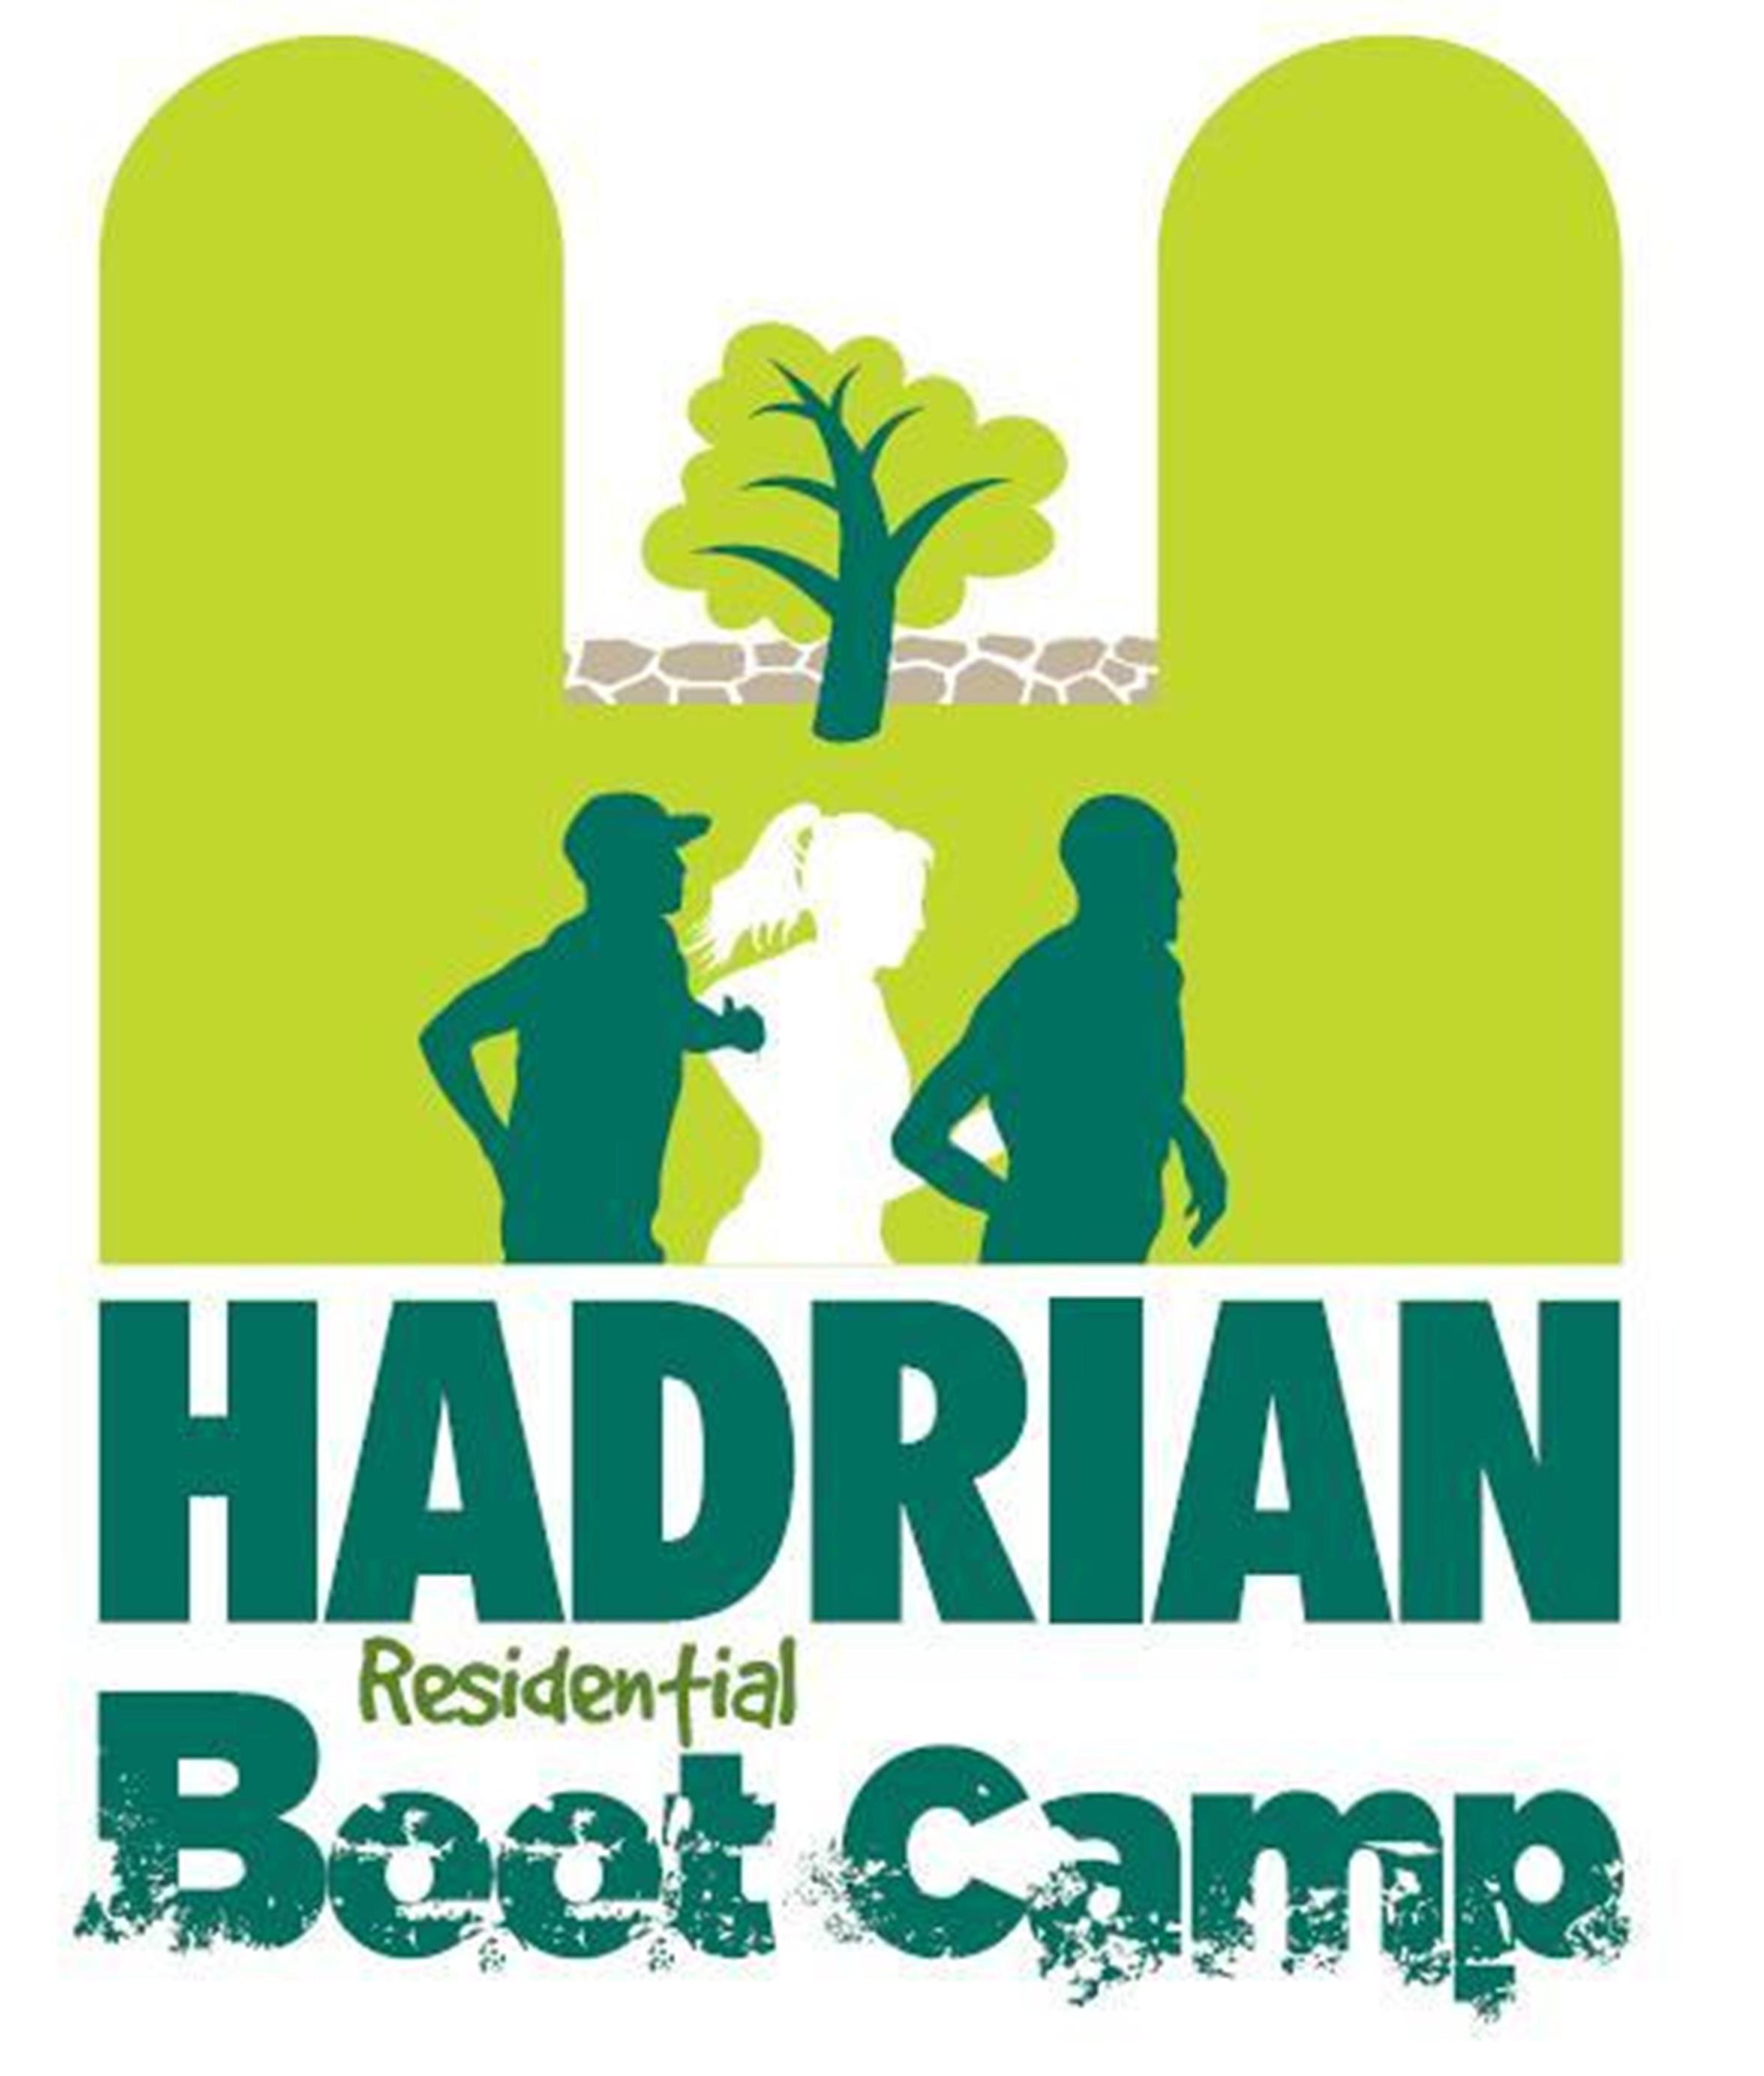 Hadrian Residential Boot Camp logo